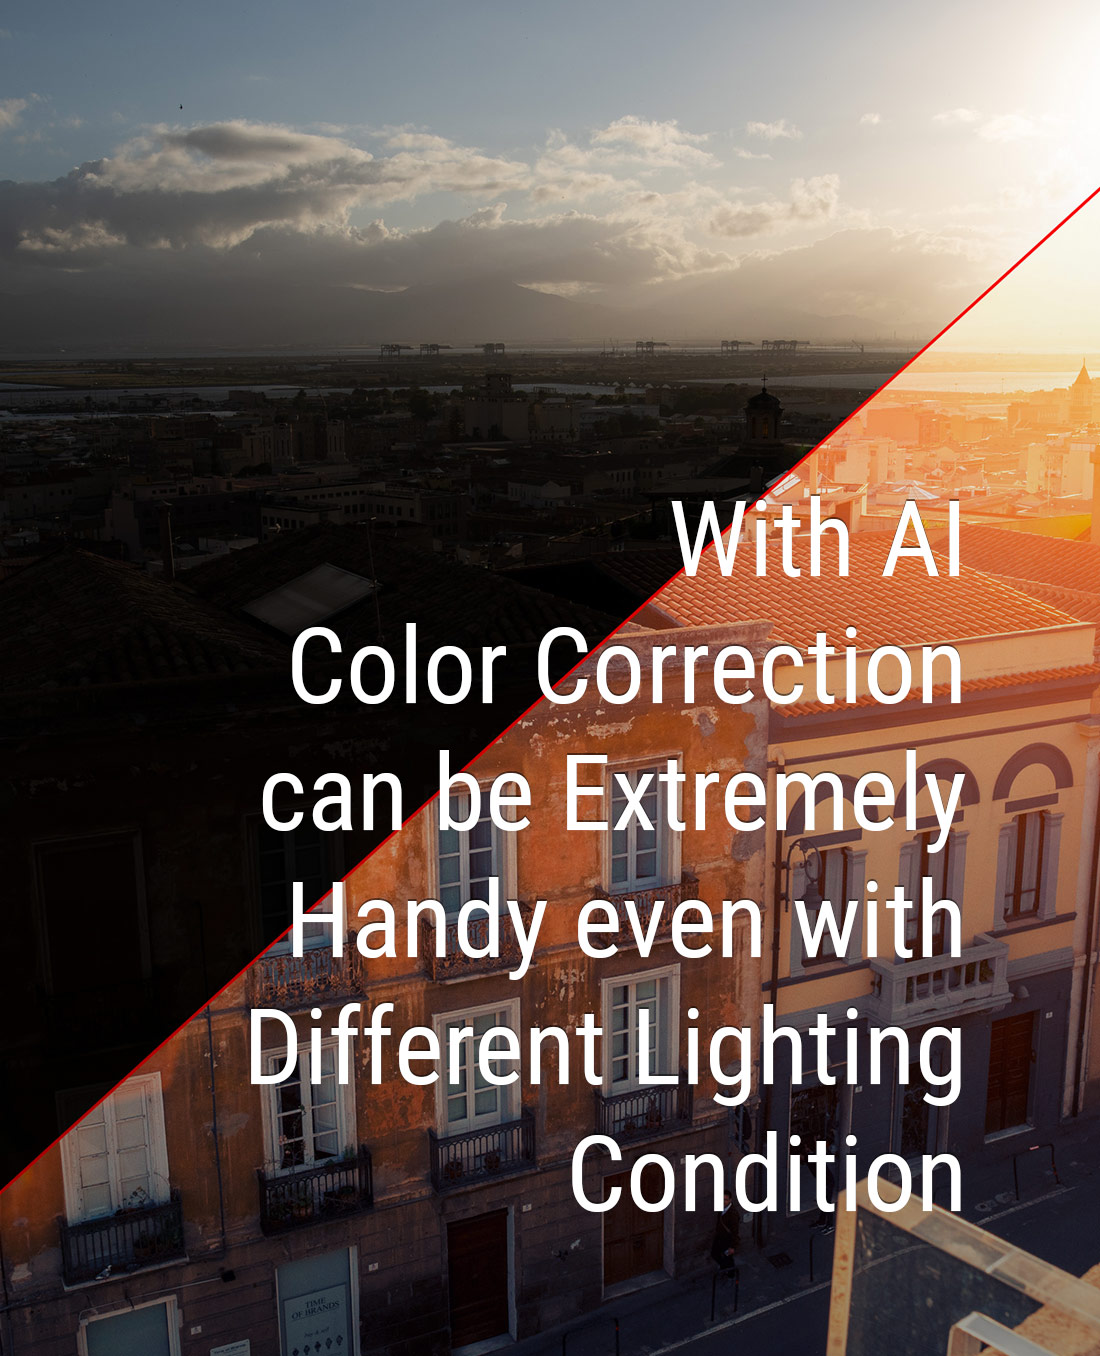 With AI Color Correction can be Extremely Handy even with Different Lighting Conditions